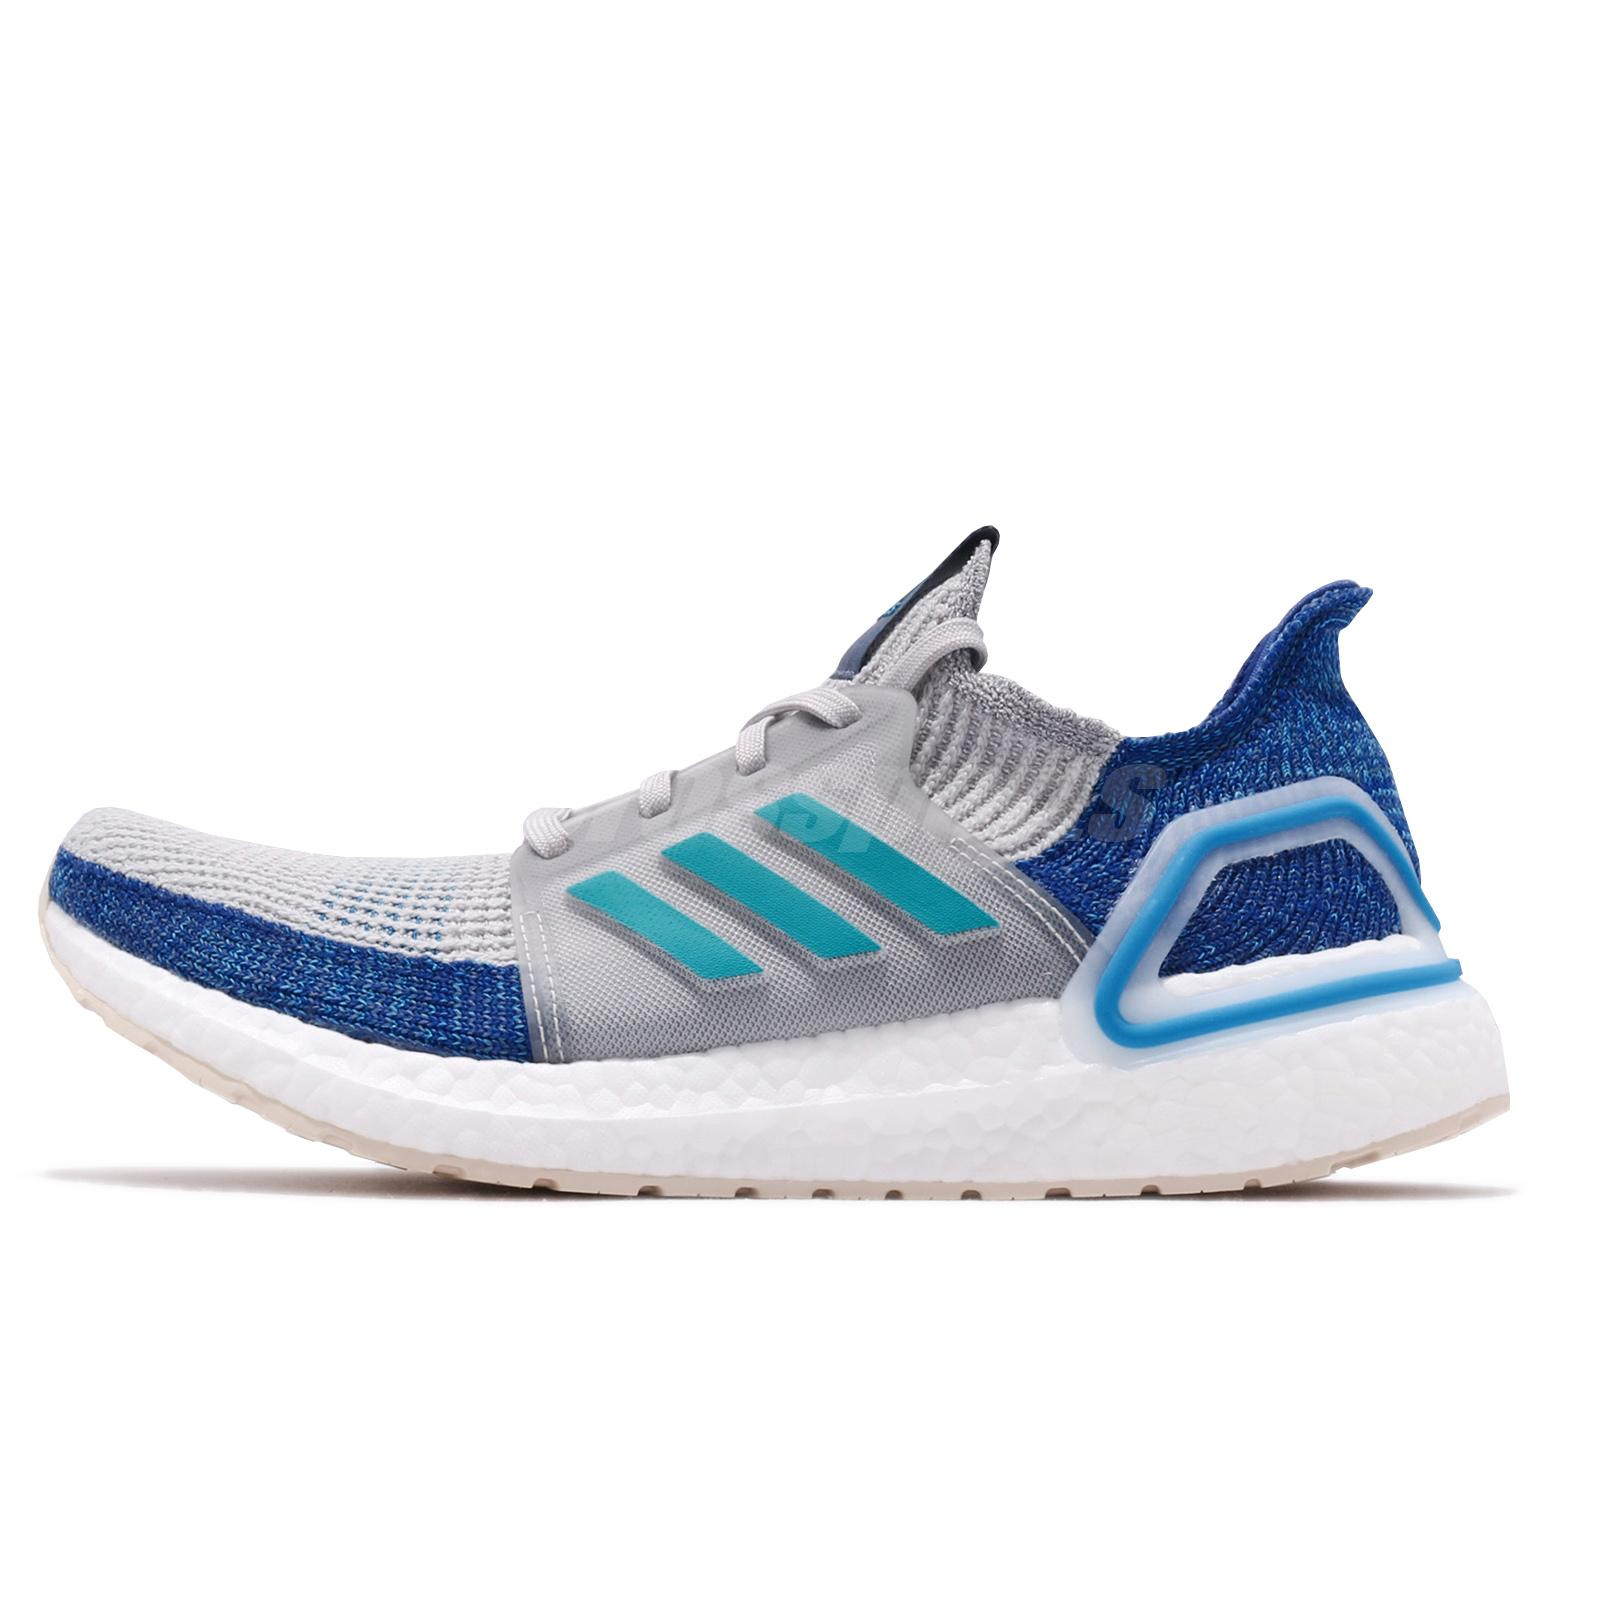 Details about adidas UltraBOOST 19 Grey Shock Cyan Blue Men Running Shoes Sneakers F35240